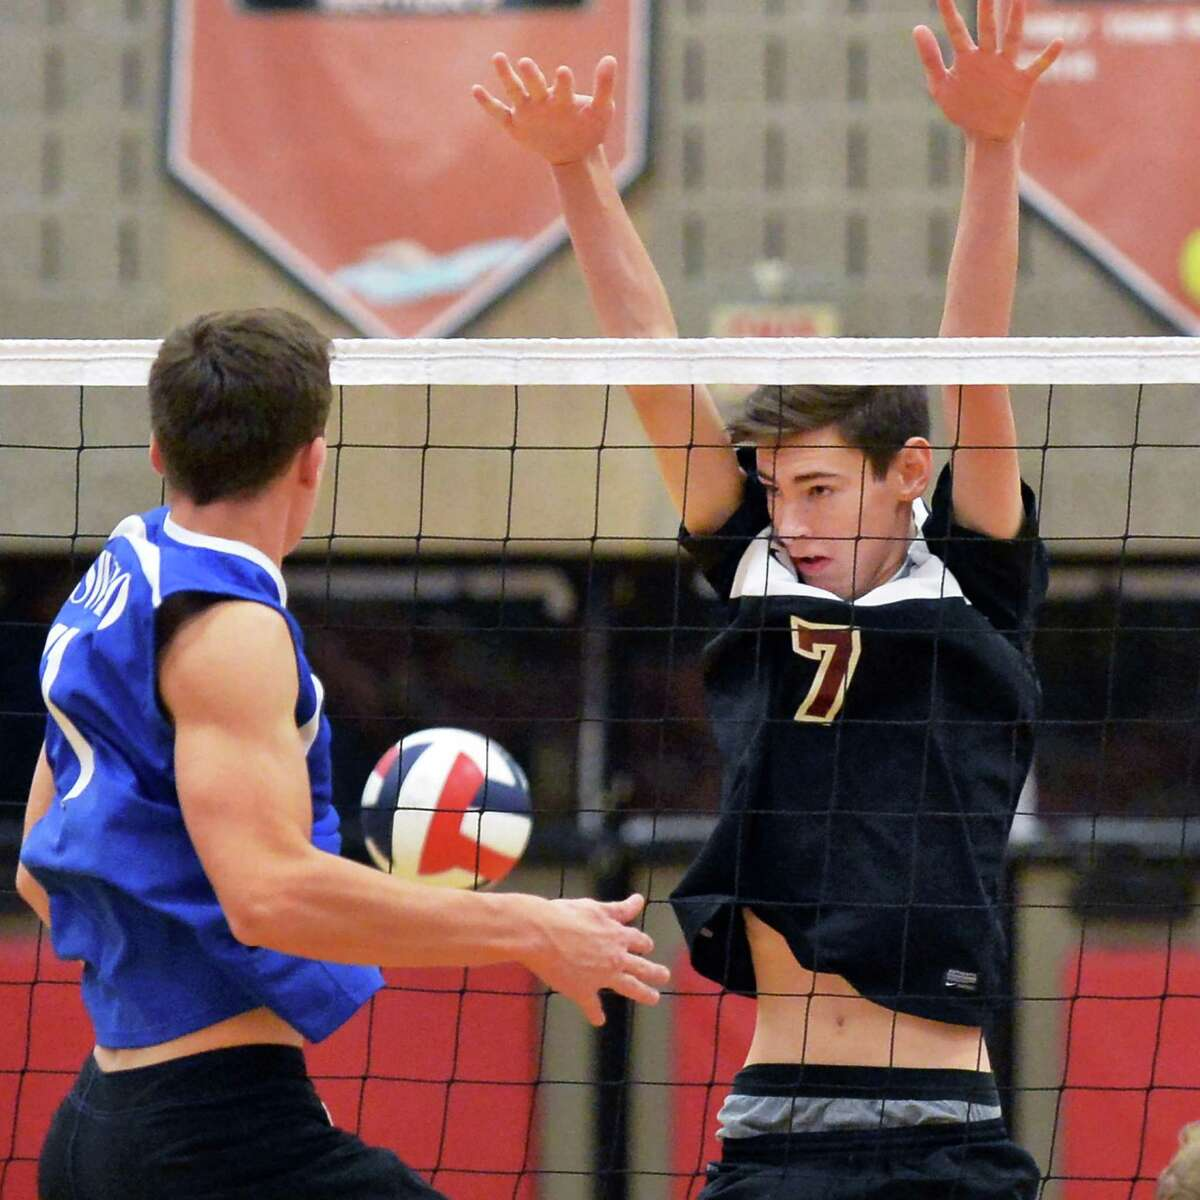 Oswego's #11 Jake Caster, left, and Burnt Hills's #7 Matt Hagan during Saturday's volleyball regional final against Nov. 14, 2015 in Guilderland, NY. (John Carl D'Annibale / Times Union)